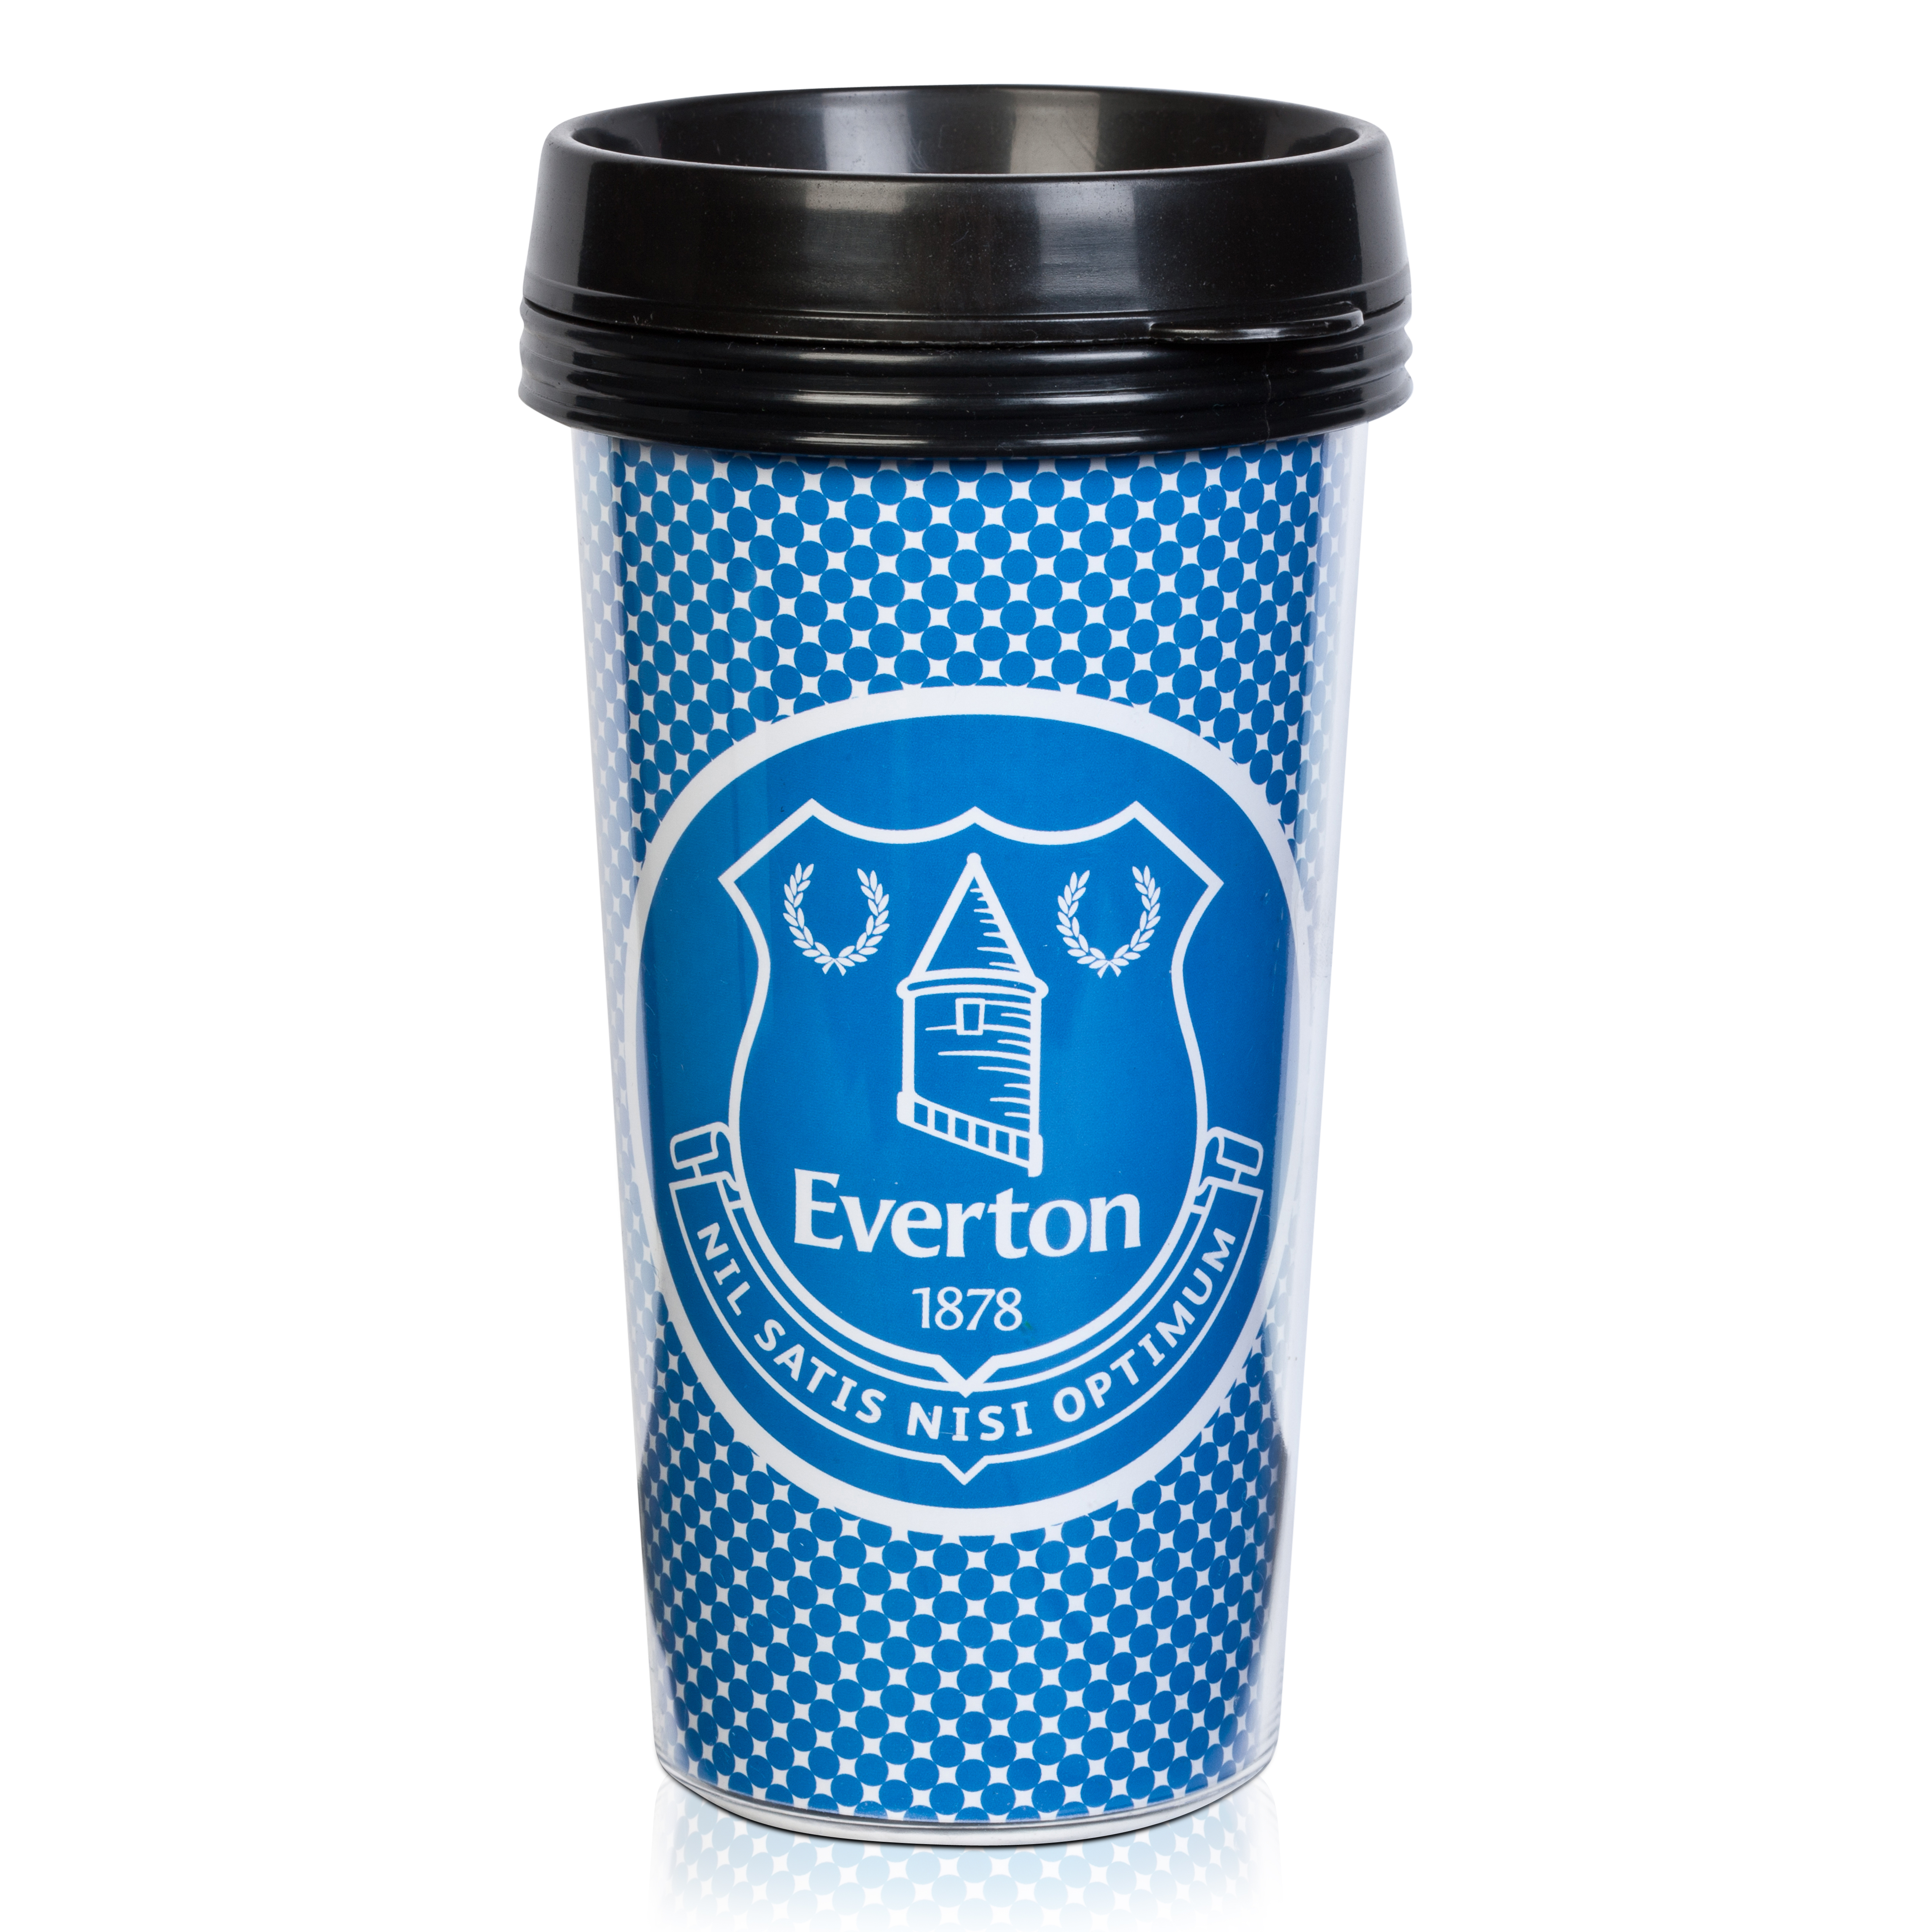 Everton Bullseye Travel Mug